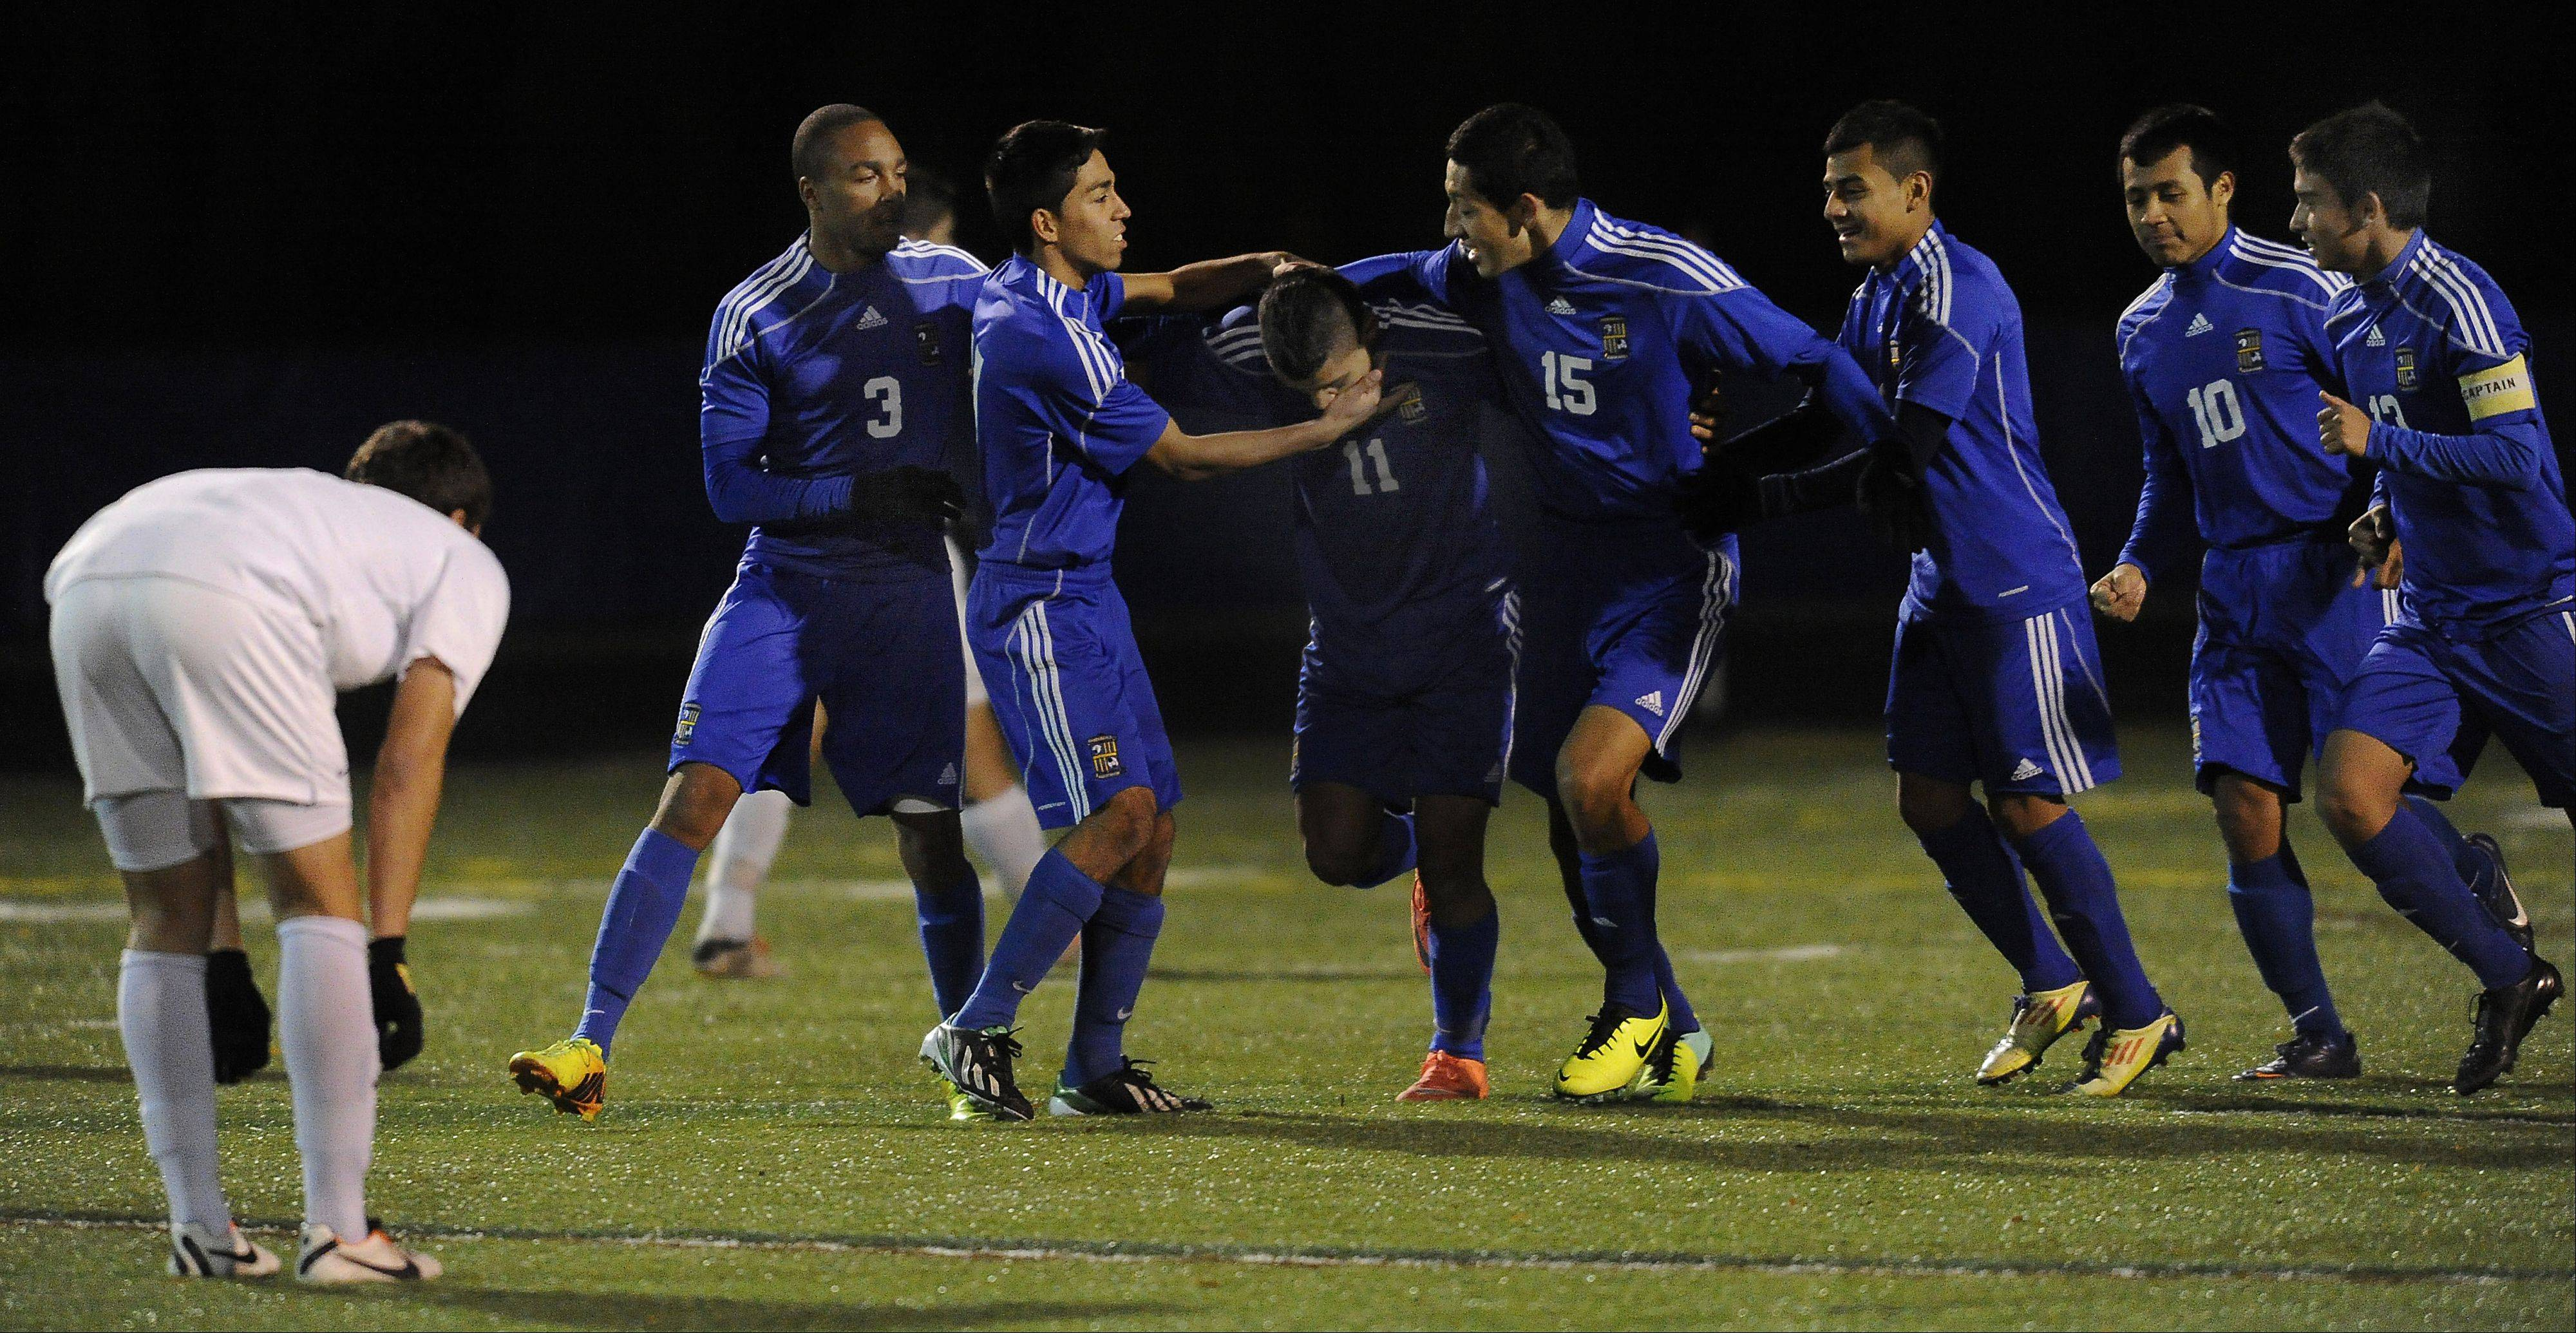 Wheeling�s Luis Herrera is mobbed by teammates after a goal.